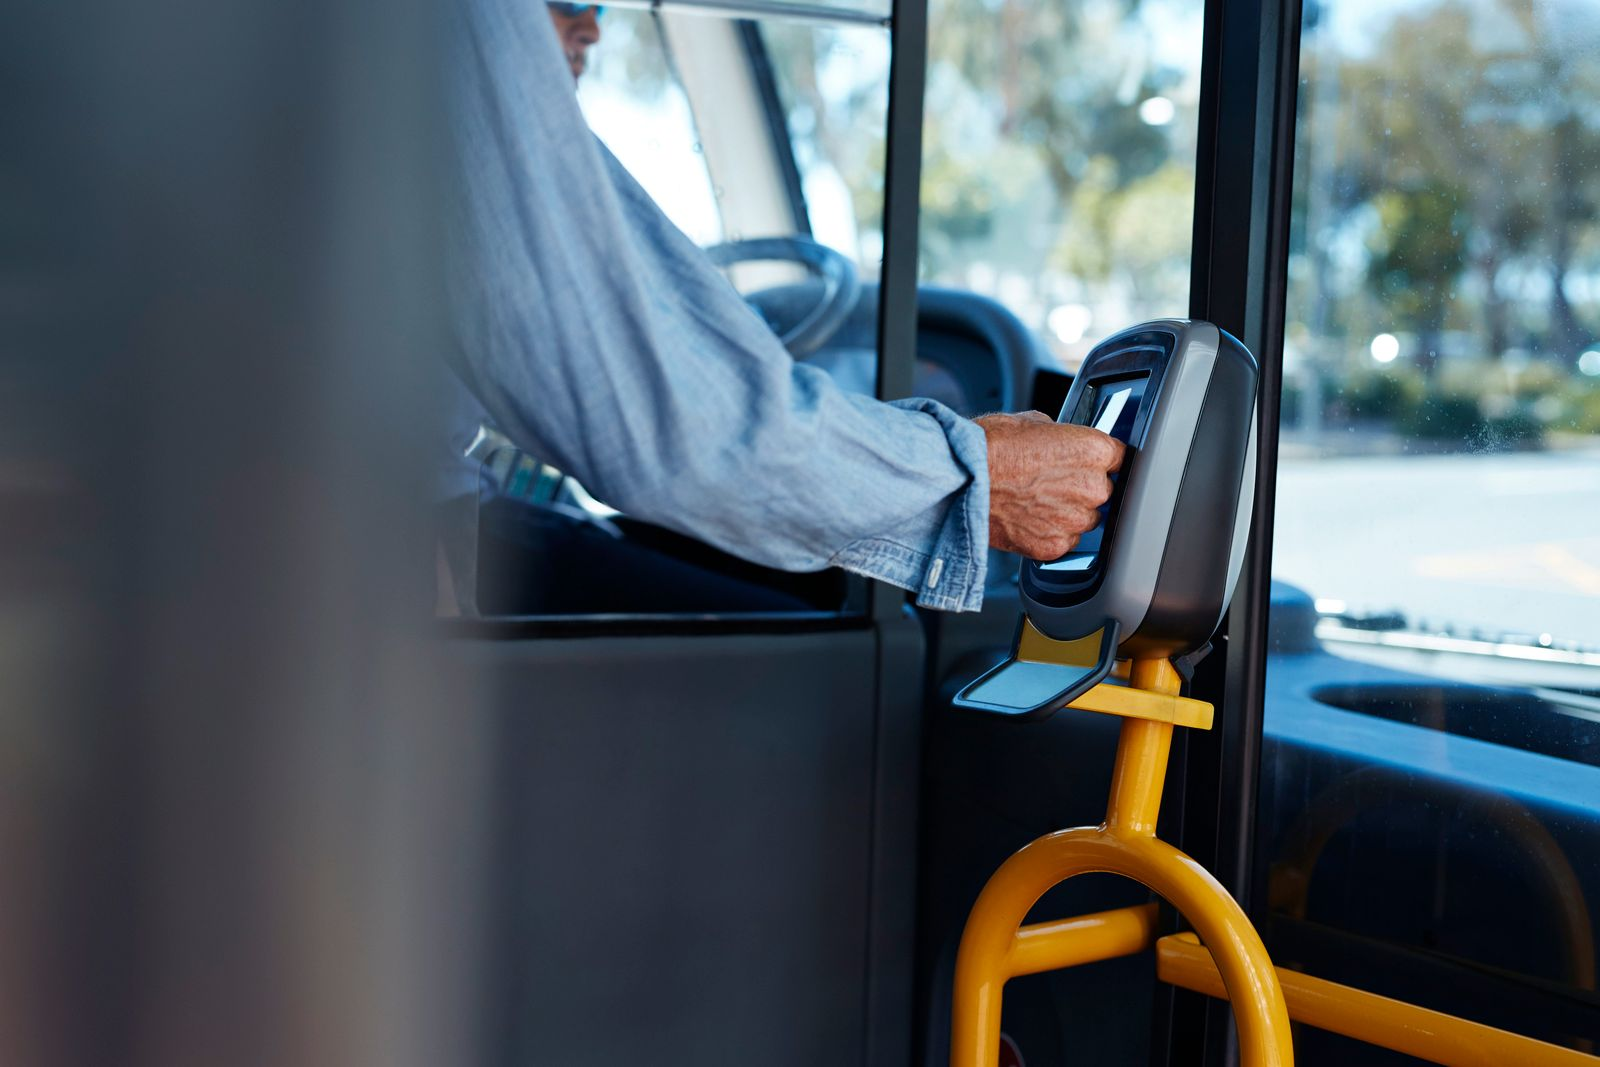 Mature man using travel card to pay for public bus ride